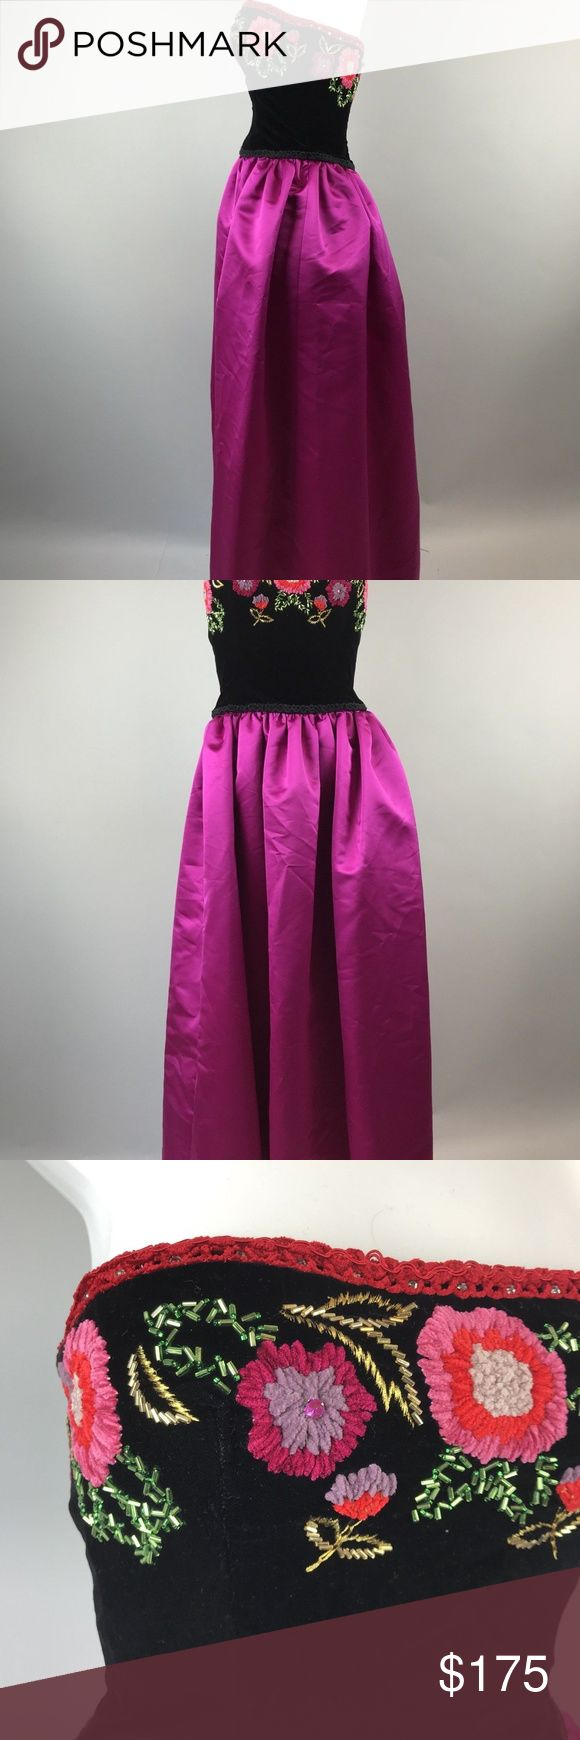 """80s Embroidered Prom Dress Beaded Taffeta 6 Vtg 80s Victoria Royal Embroidered Prom Dress Pink Taffeta Skirt Beaded 6   Amazing dress. Black velvet top with intricate embroidery and beading. Bottom is a deep magenta taffeta like skirt. Tagged size 6 but please see measurements to ensure a proper fit. Measured flat unstretched.  Armpit to armpit 16.5""""  Waist 14.5""""  Length 50"""" Vintage Dresses Prom"""